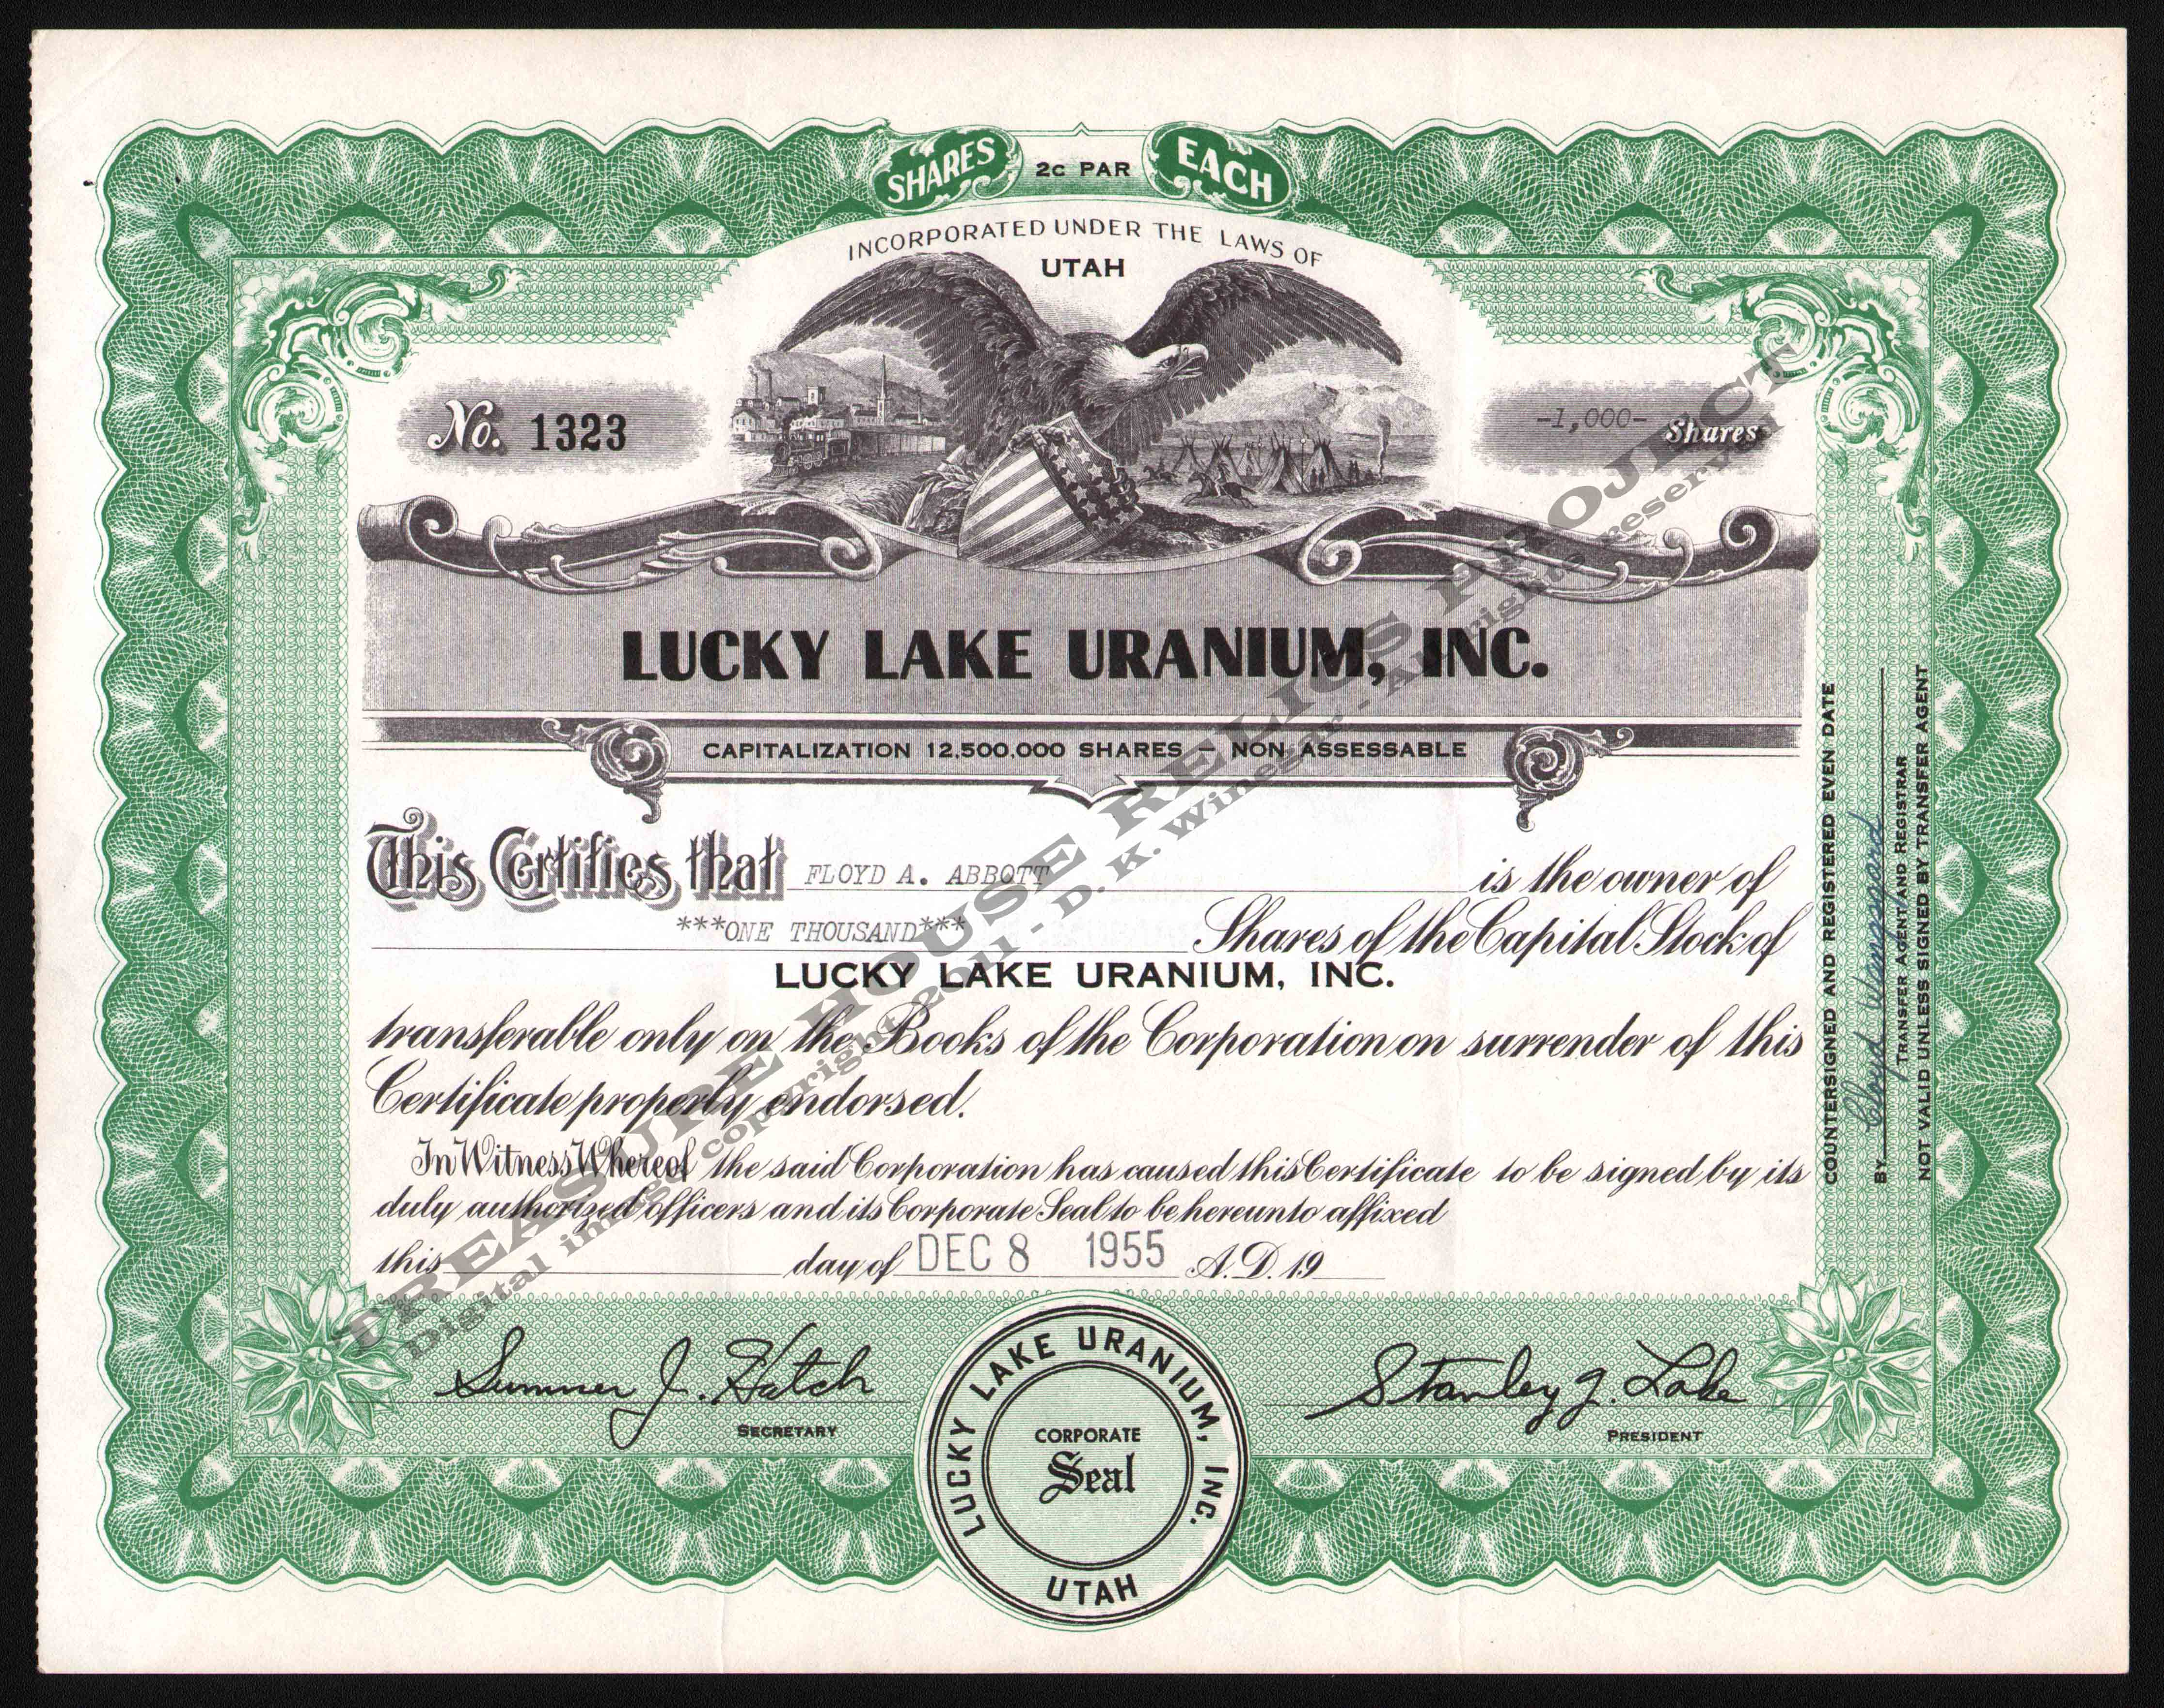 LUCKY_LAKE_URANIUM_INC_1323_1955_400_EMBOSS.jpg